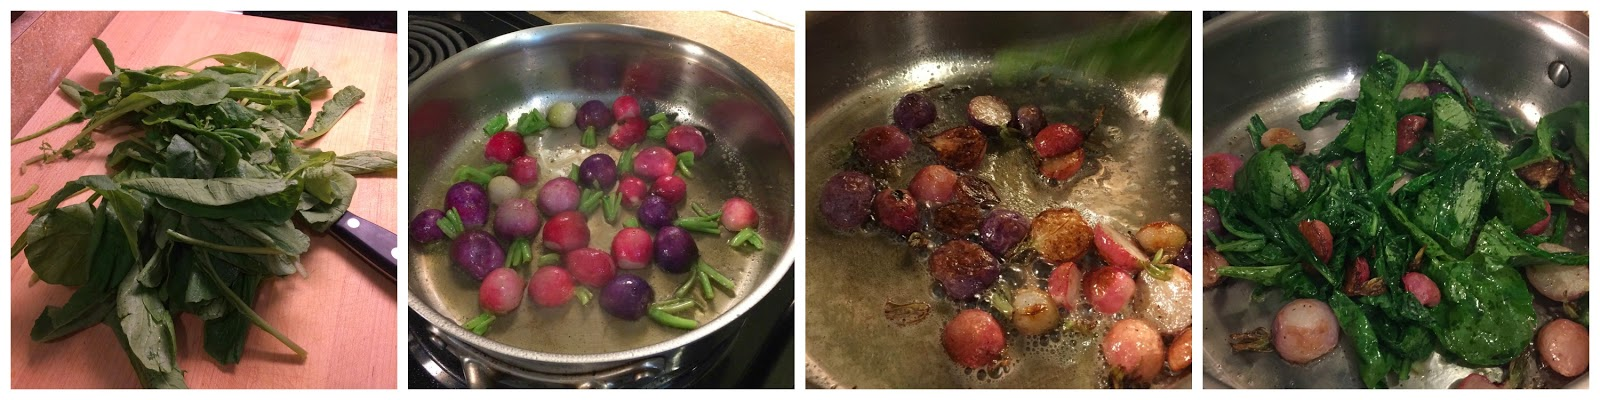 how to cook radishes in the oven